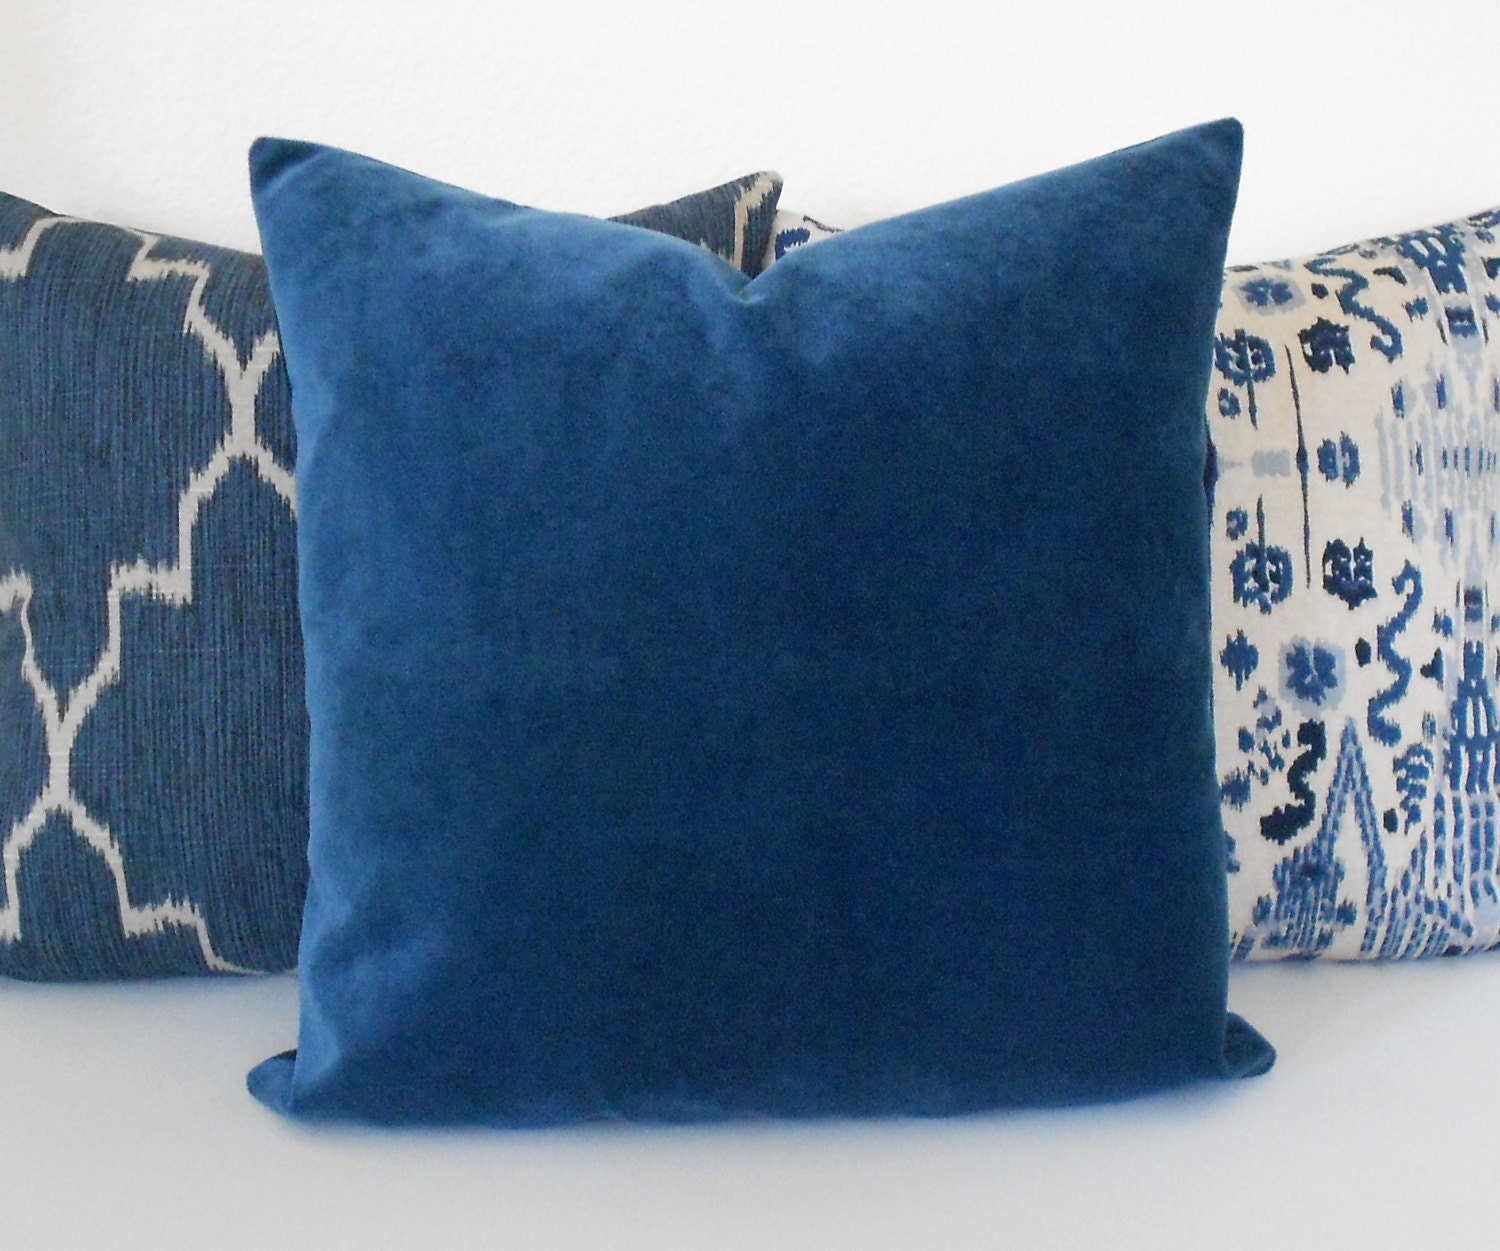 Throw Pillows Velvet : Indigo Blue velvet decorative pillow cover accent pillow